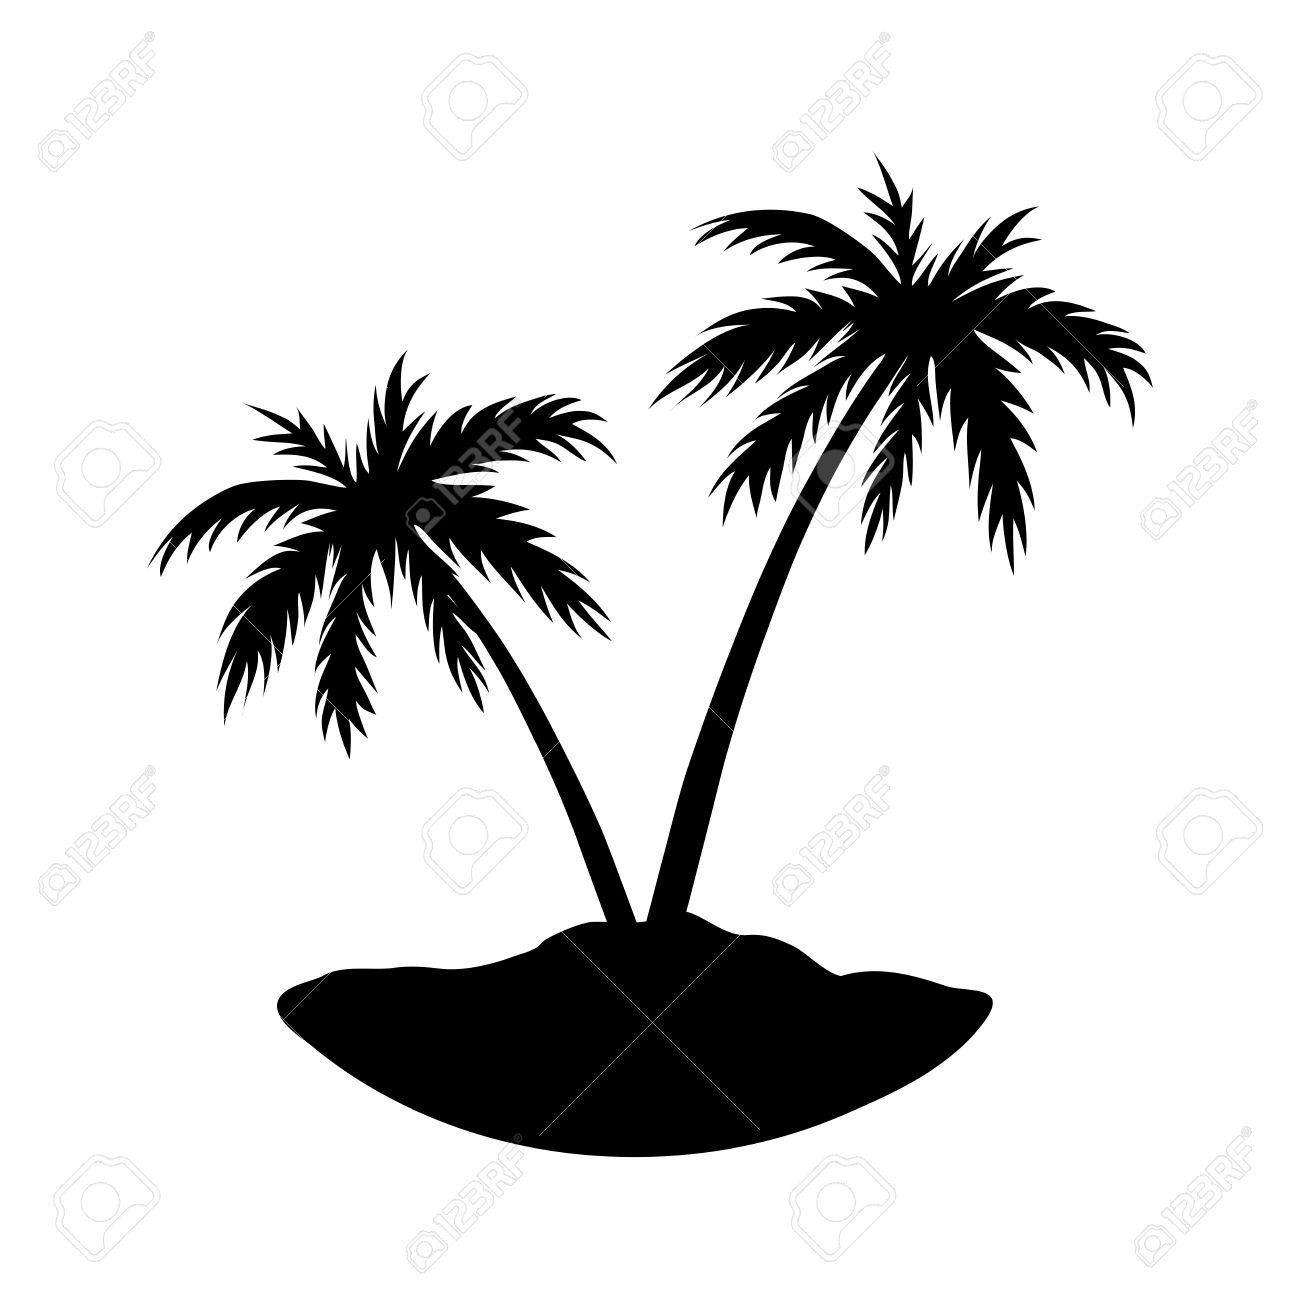 Palm Tree Silhouette | Free download on ClipArtMag